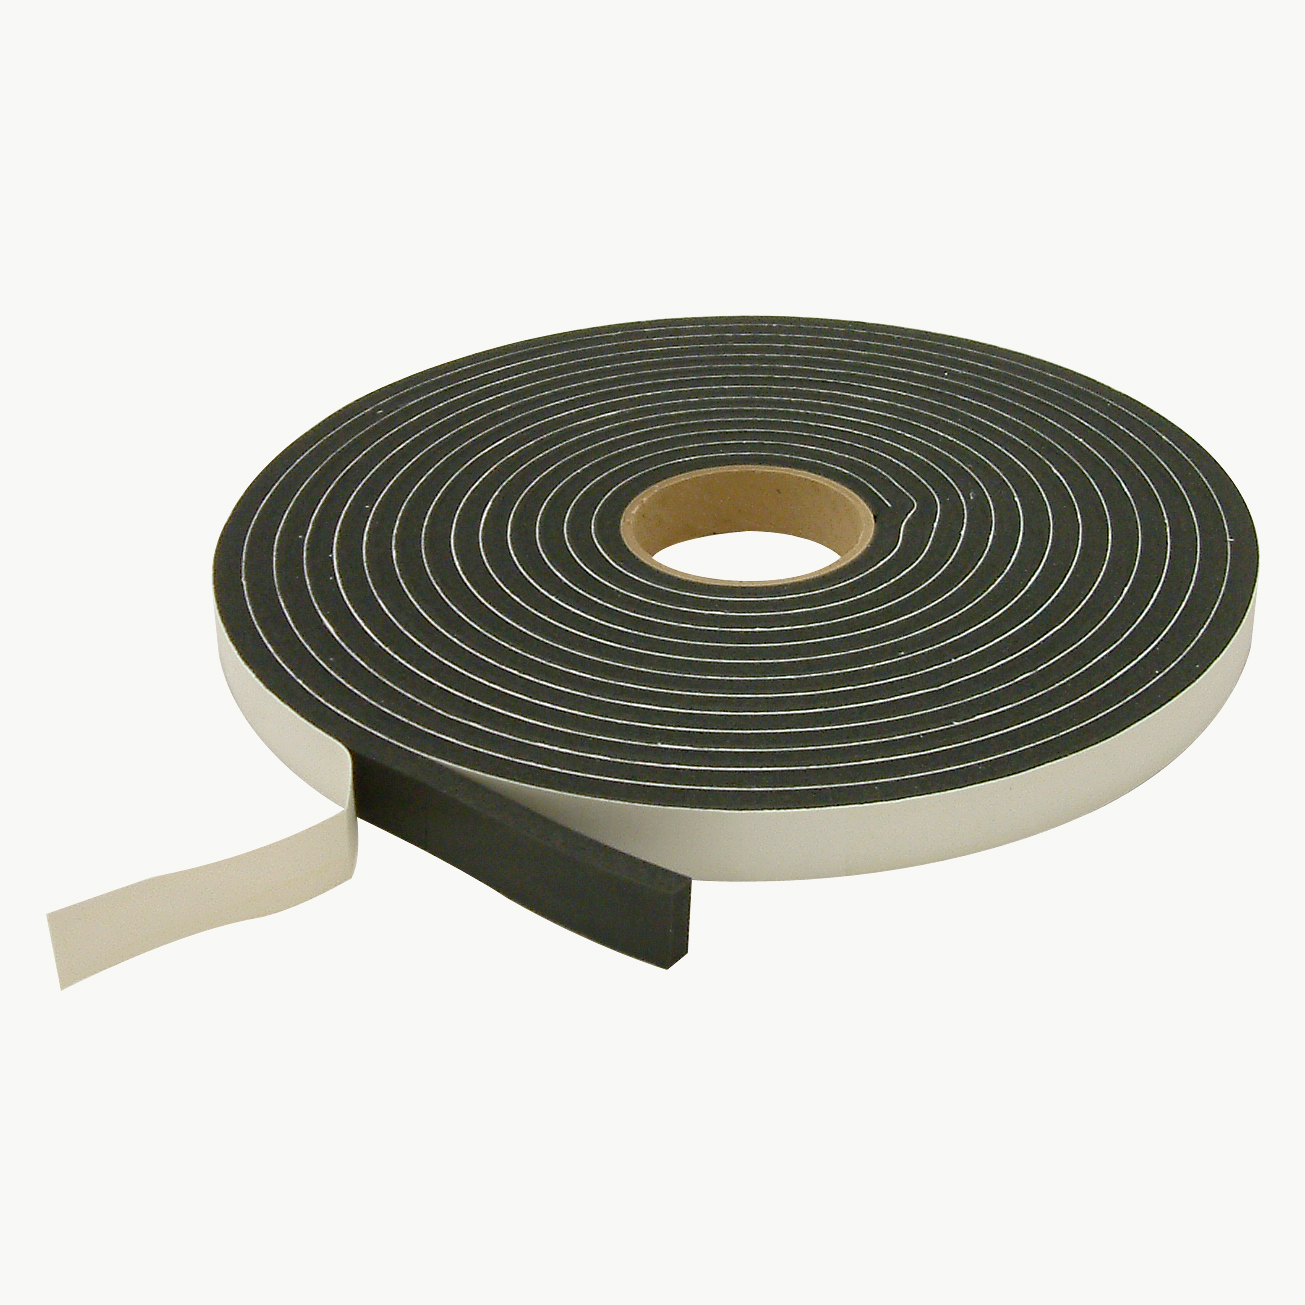 JVCC SCF-01 Single Coated PVC Foam Tape: 3/8 in. thick x 1 in. x 30 ft. (Black)